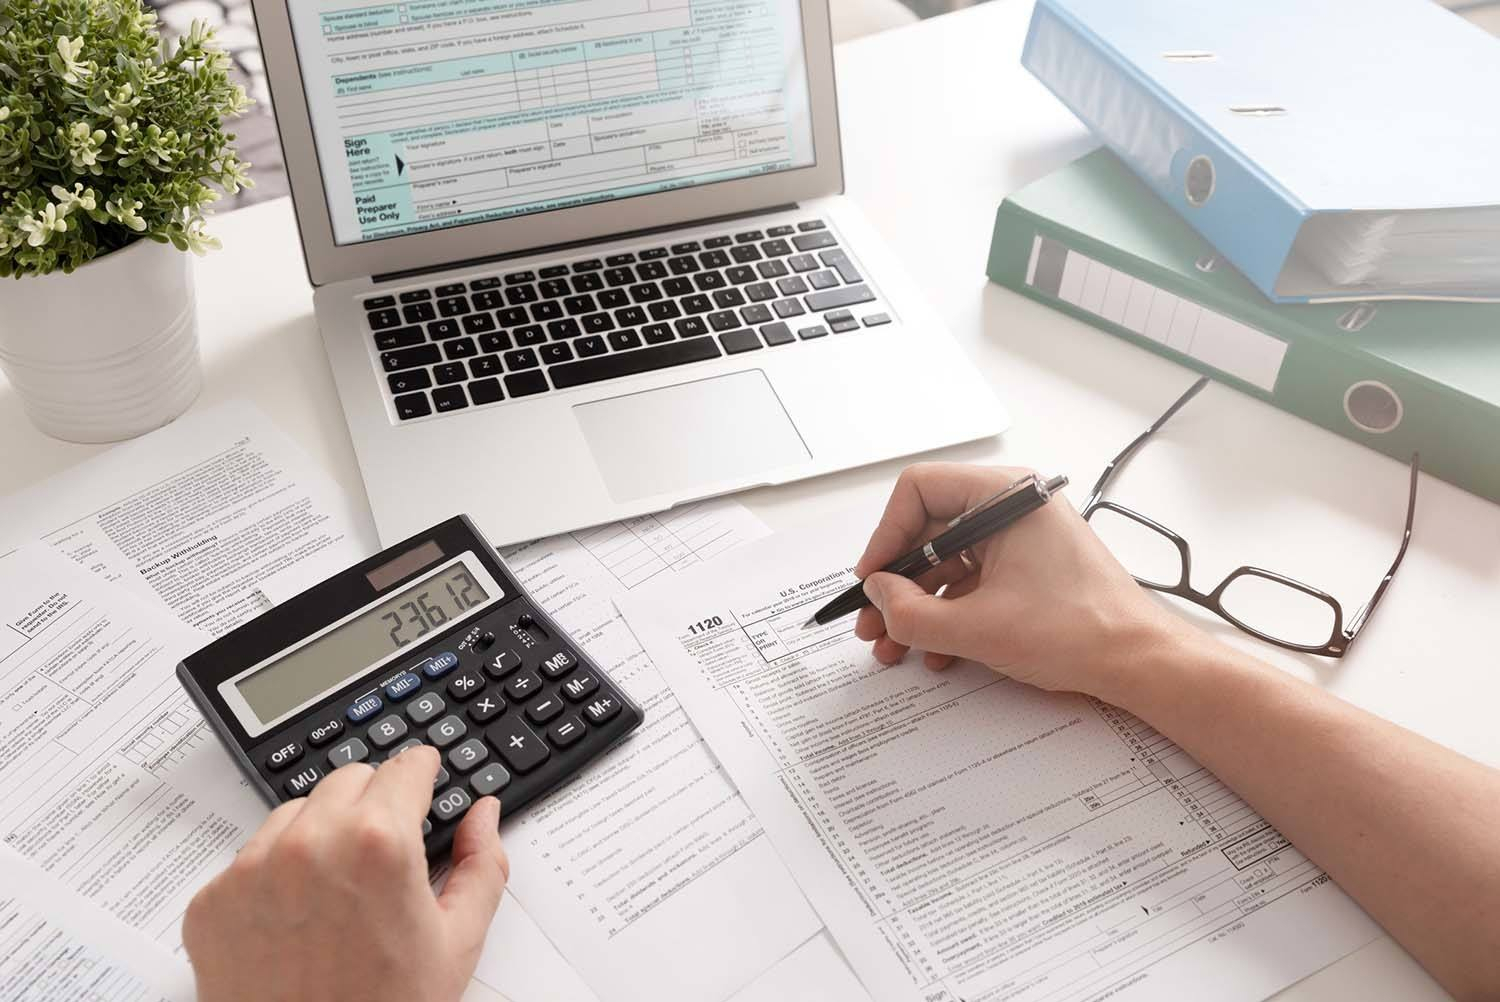 Tax News For Landlords: A Complete Guide For 2019/20 intended for Tax Desk Card For 2020